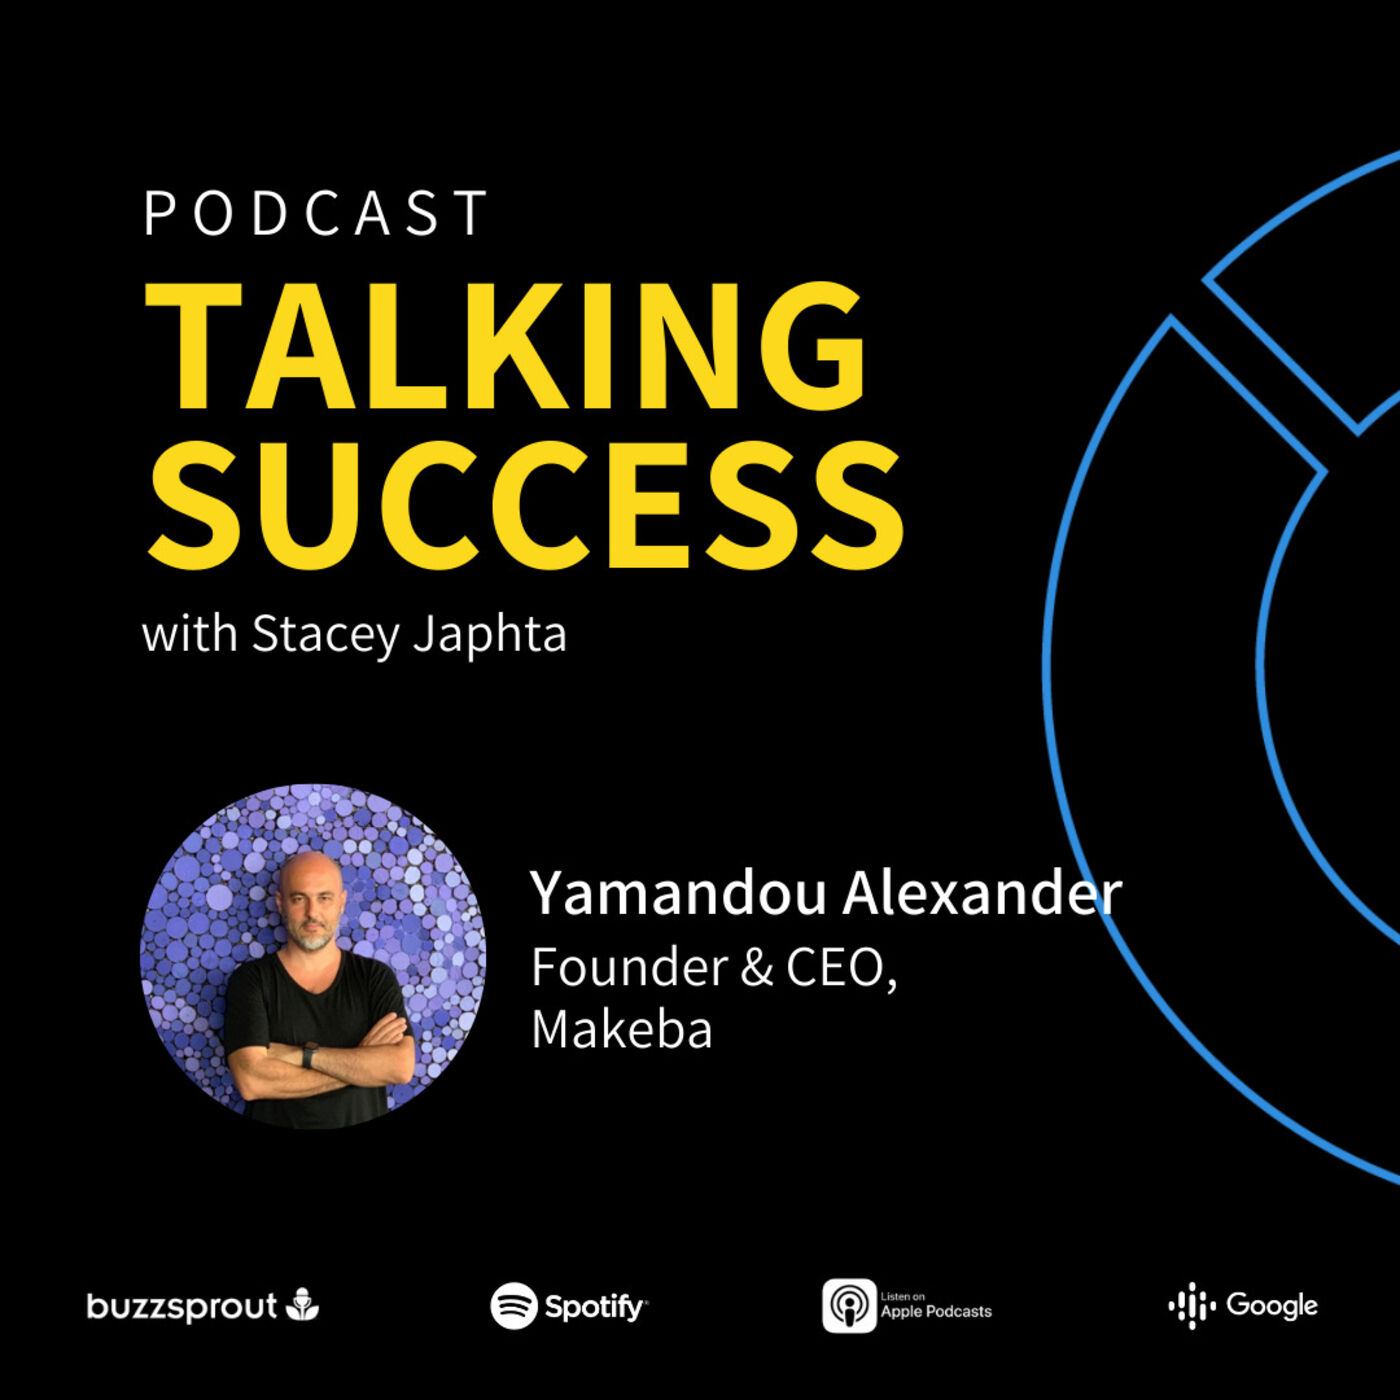 Yamandou Alexander, CEO & Founder of Makeba - All things FinTech, how to expand your business and product into Africa, & the informal market going digital